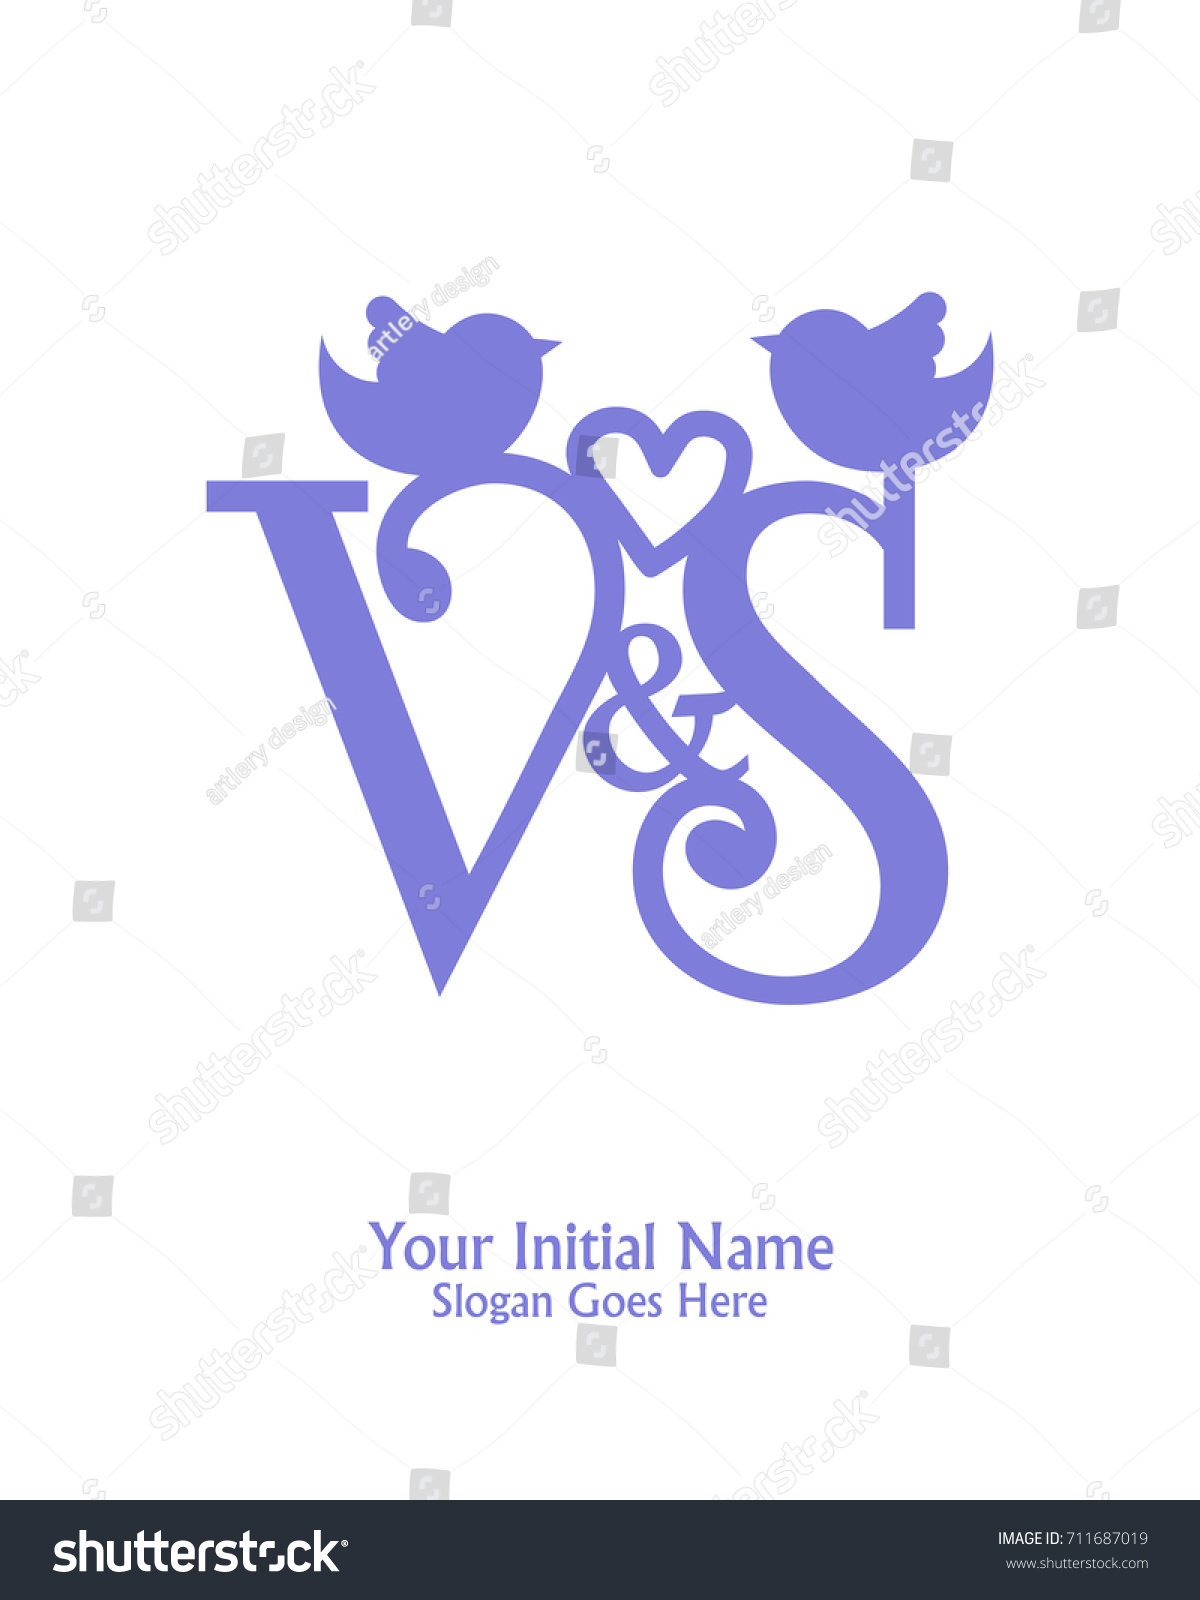 Initial Name V S Logo Template Stock Vector Royalty Free 711687019